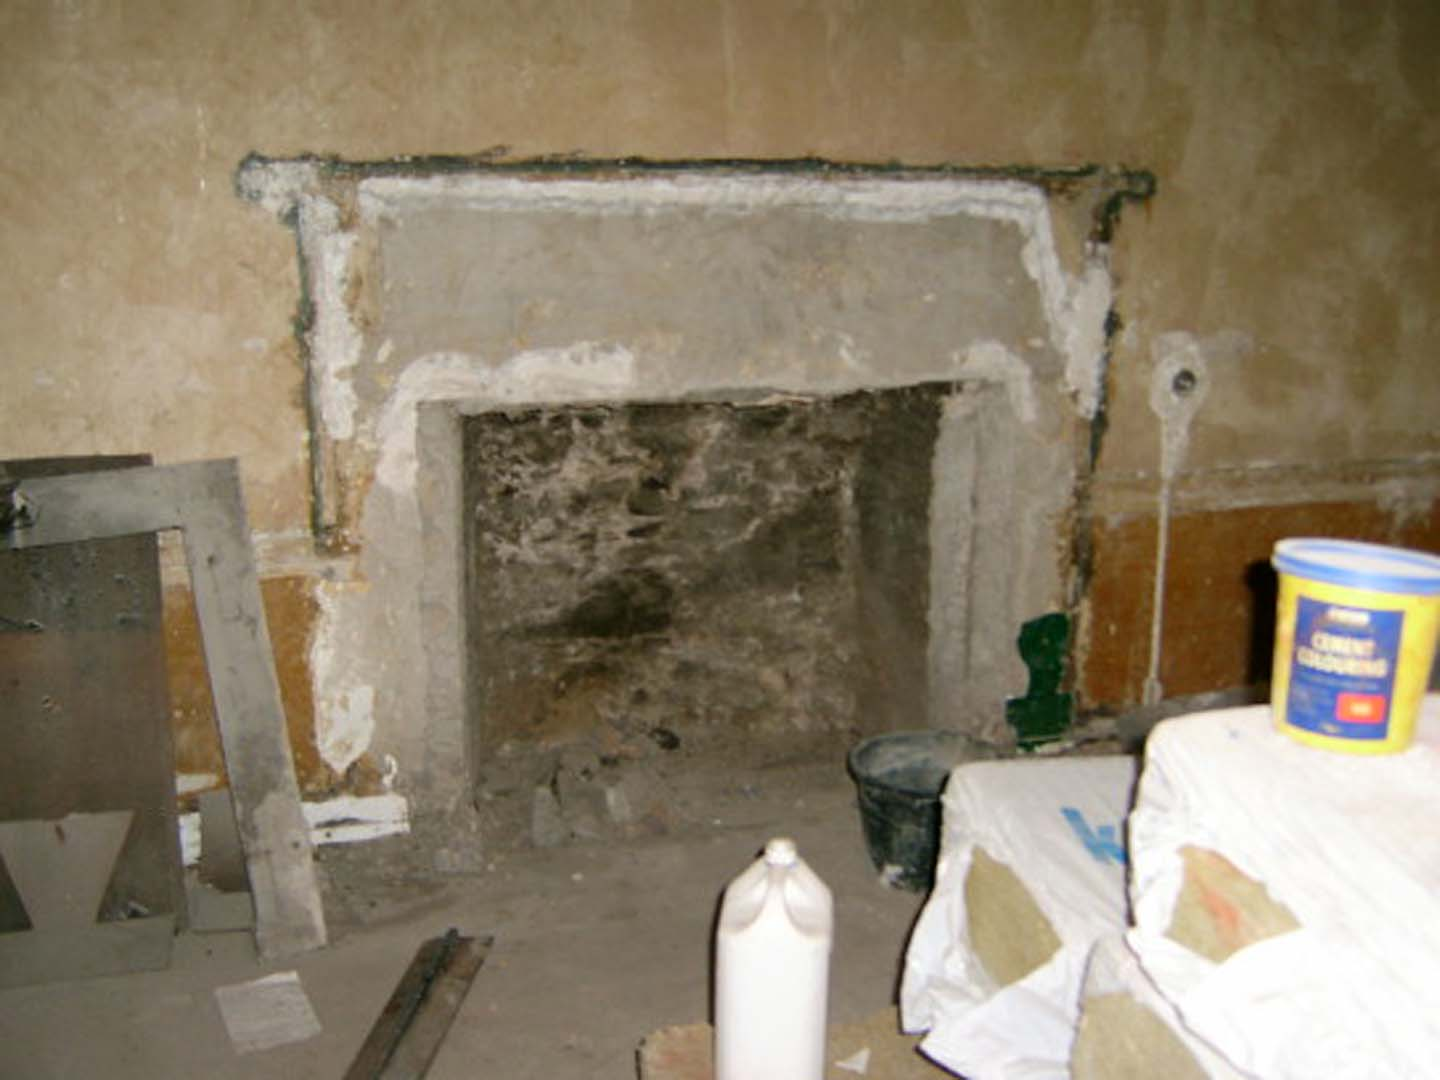 Georgian House image of fireplace being worked on during restoration